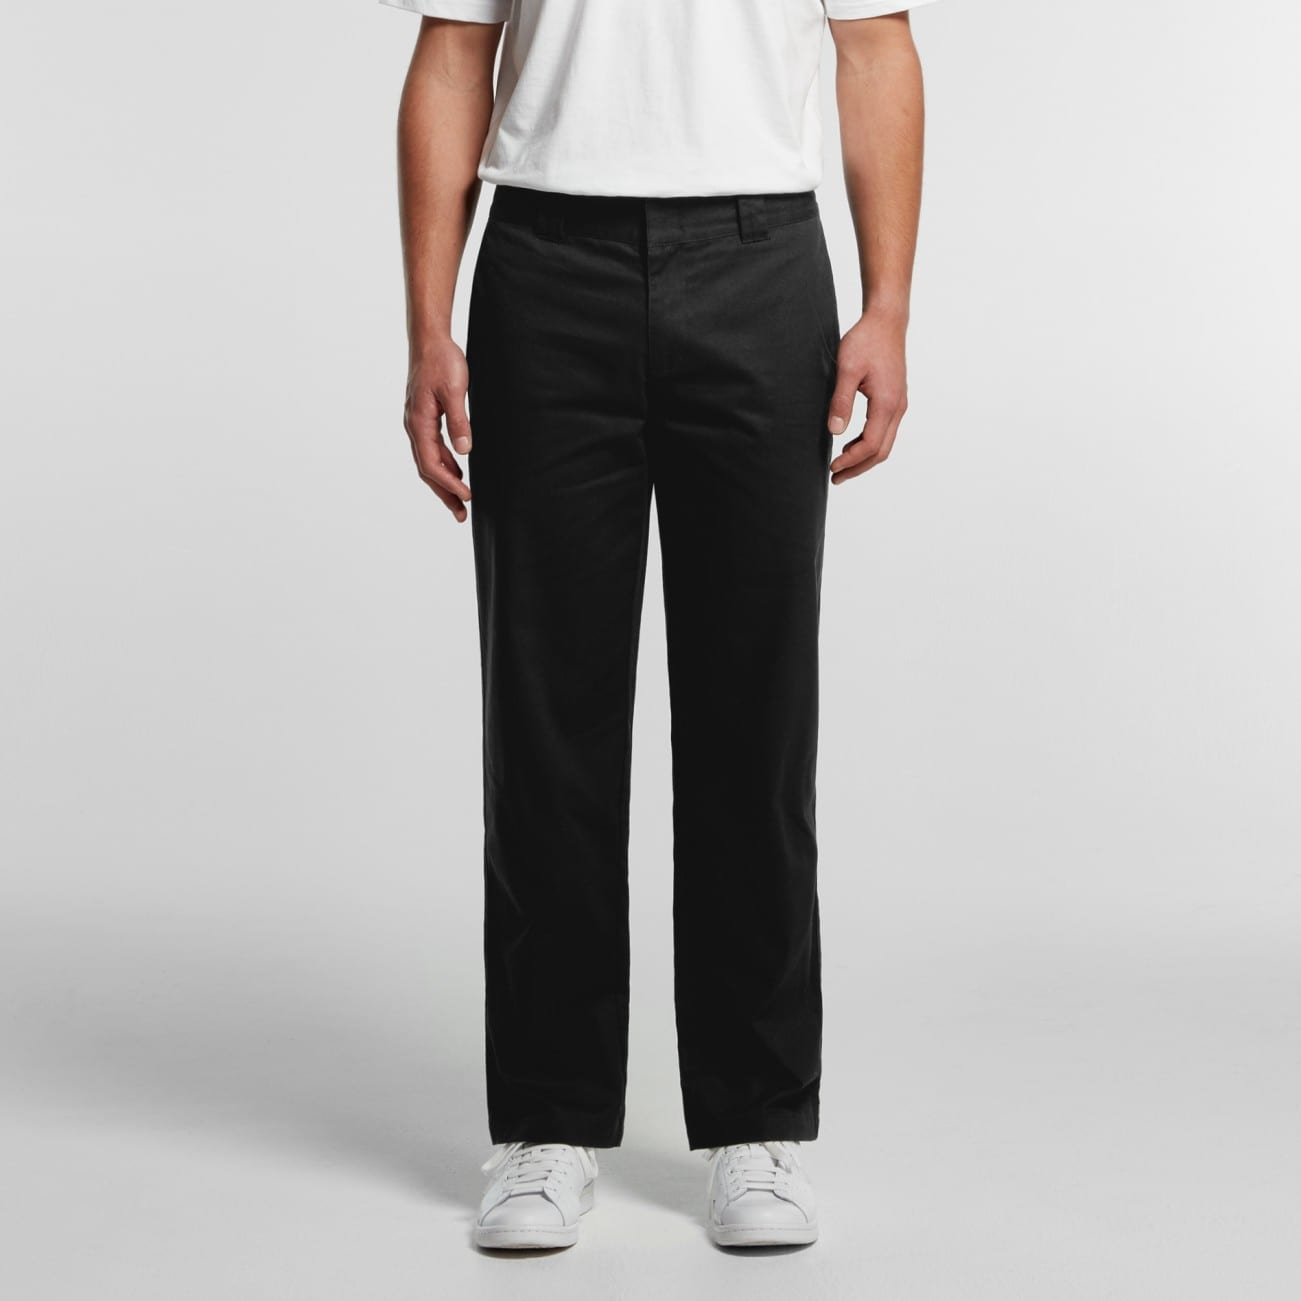 AS 5914 Regular Pants